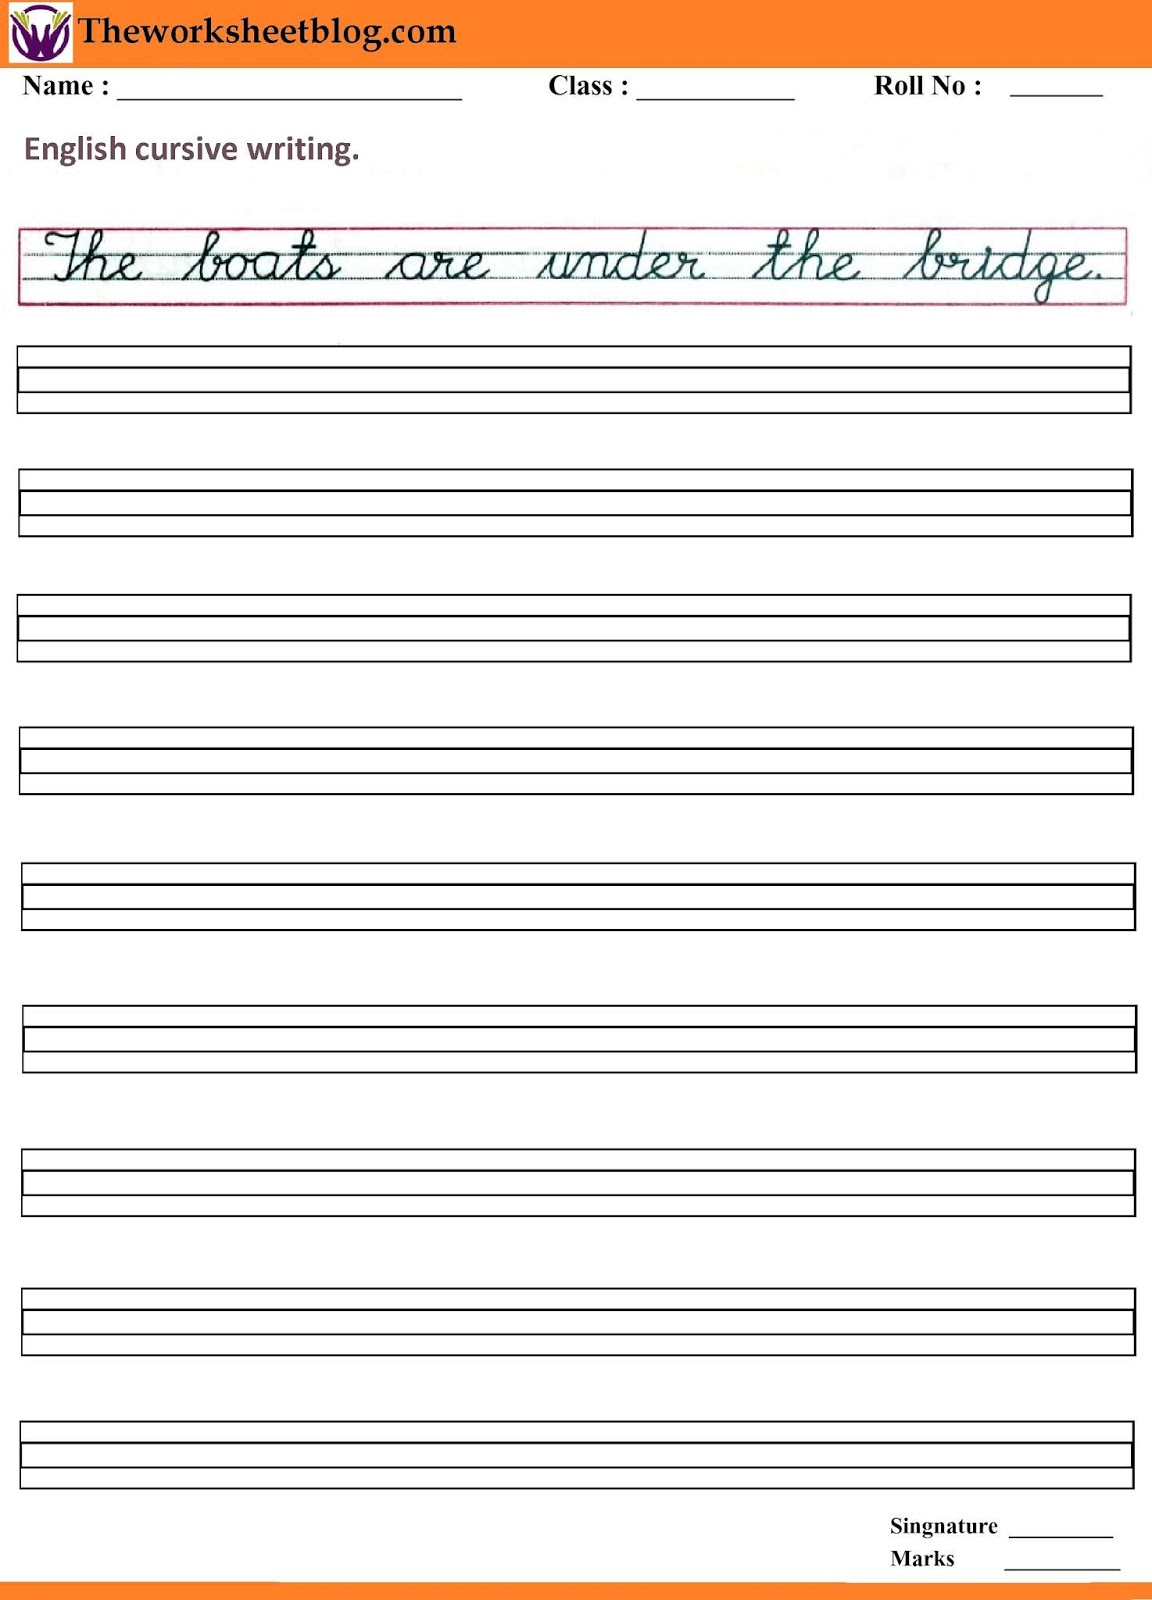 English Cursive Handwriting Worksheet